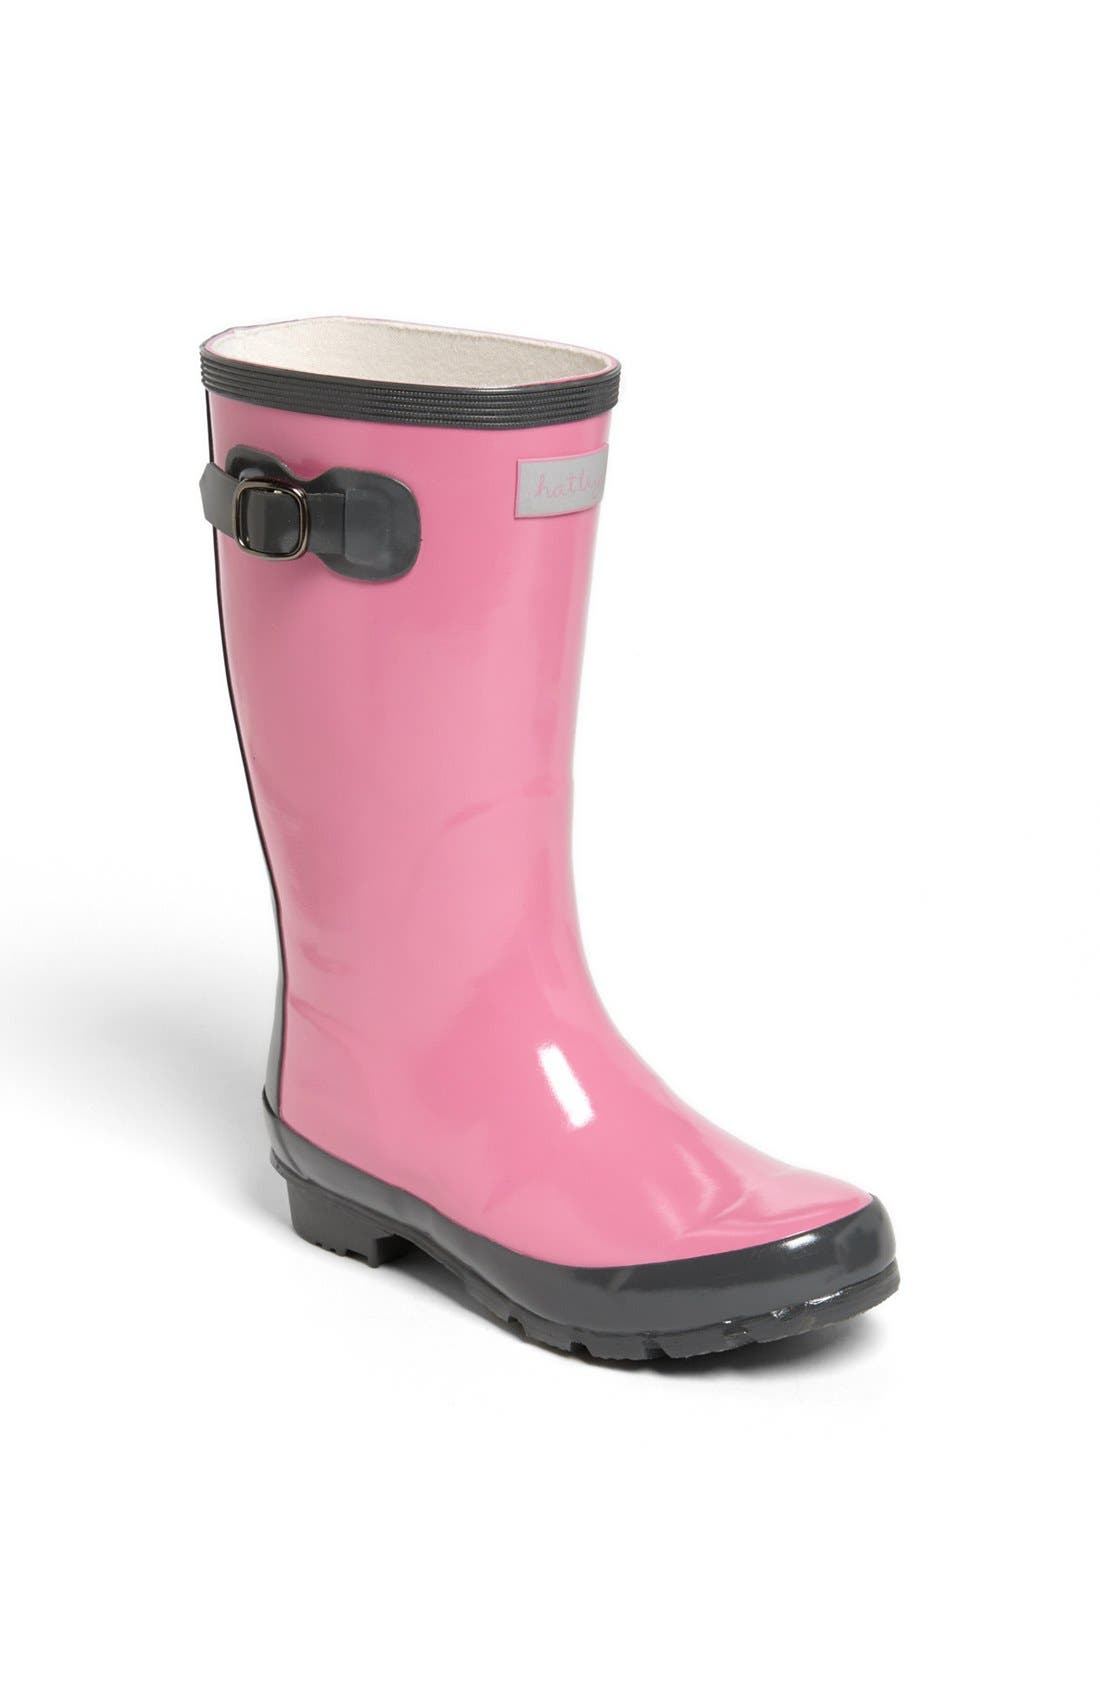 Alternate Image 1 Selected - Hatley 'Orchid Lily' Rain Boot (Toddler & Little Kid)